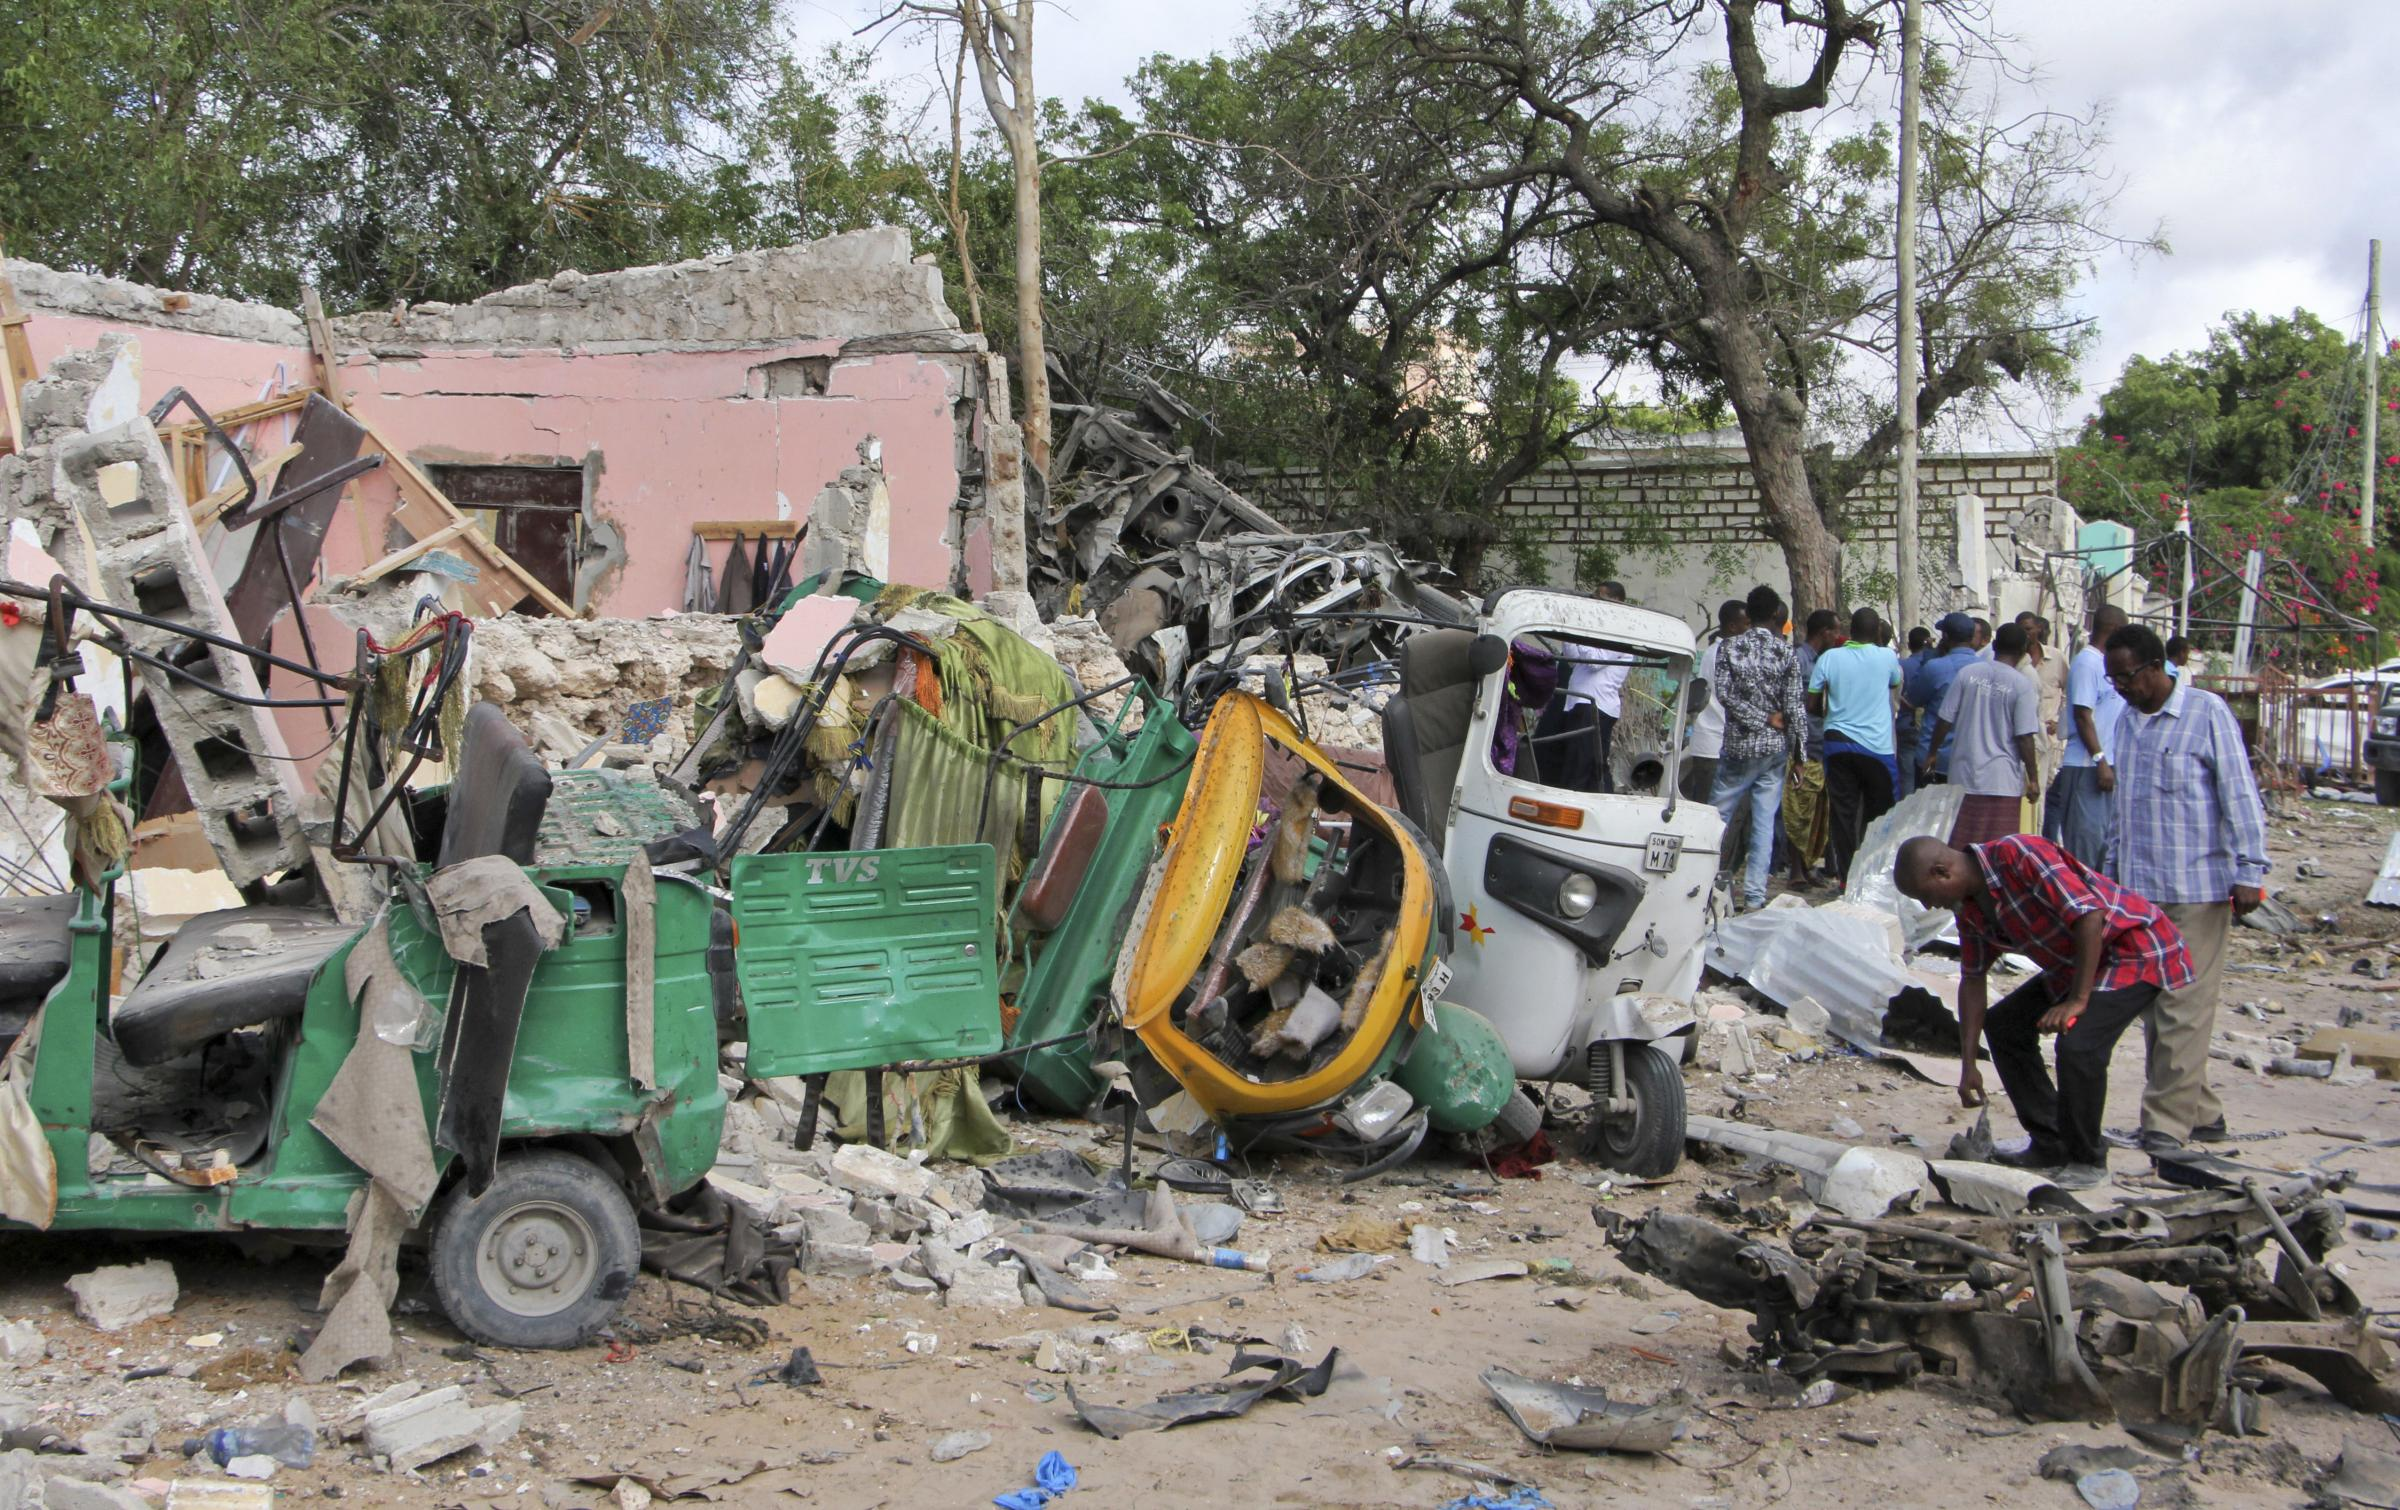 SRSG Keating condemns attack on popular Mogadishu restaurant and hotel